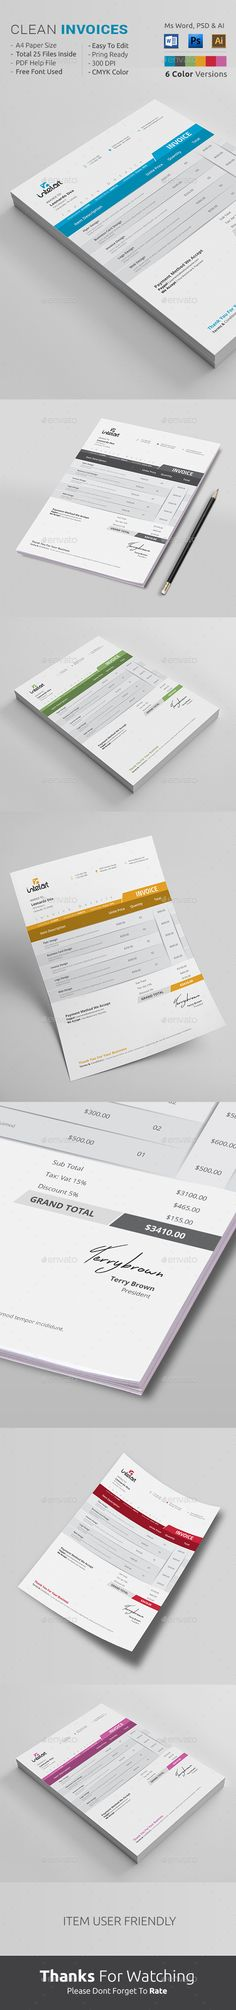 20 Creative Invoice \ Proposal Template Designs Template - invoice template word 2007